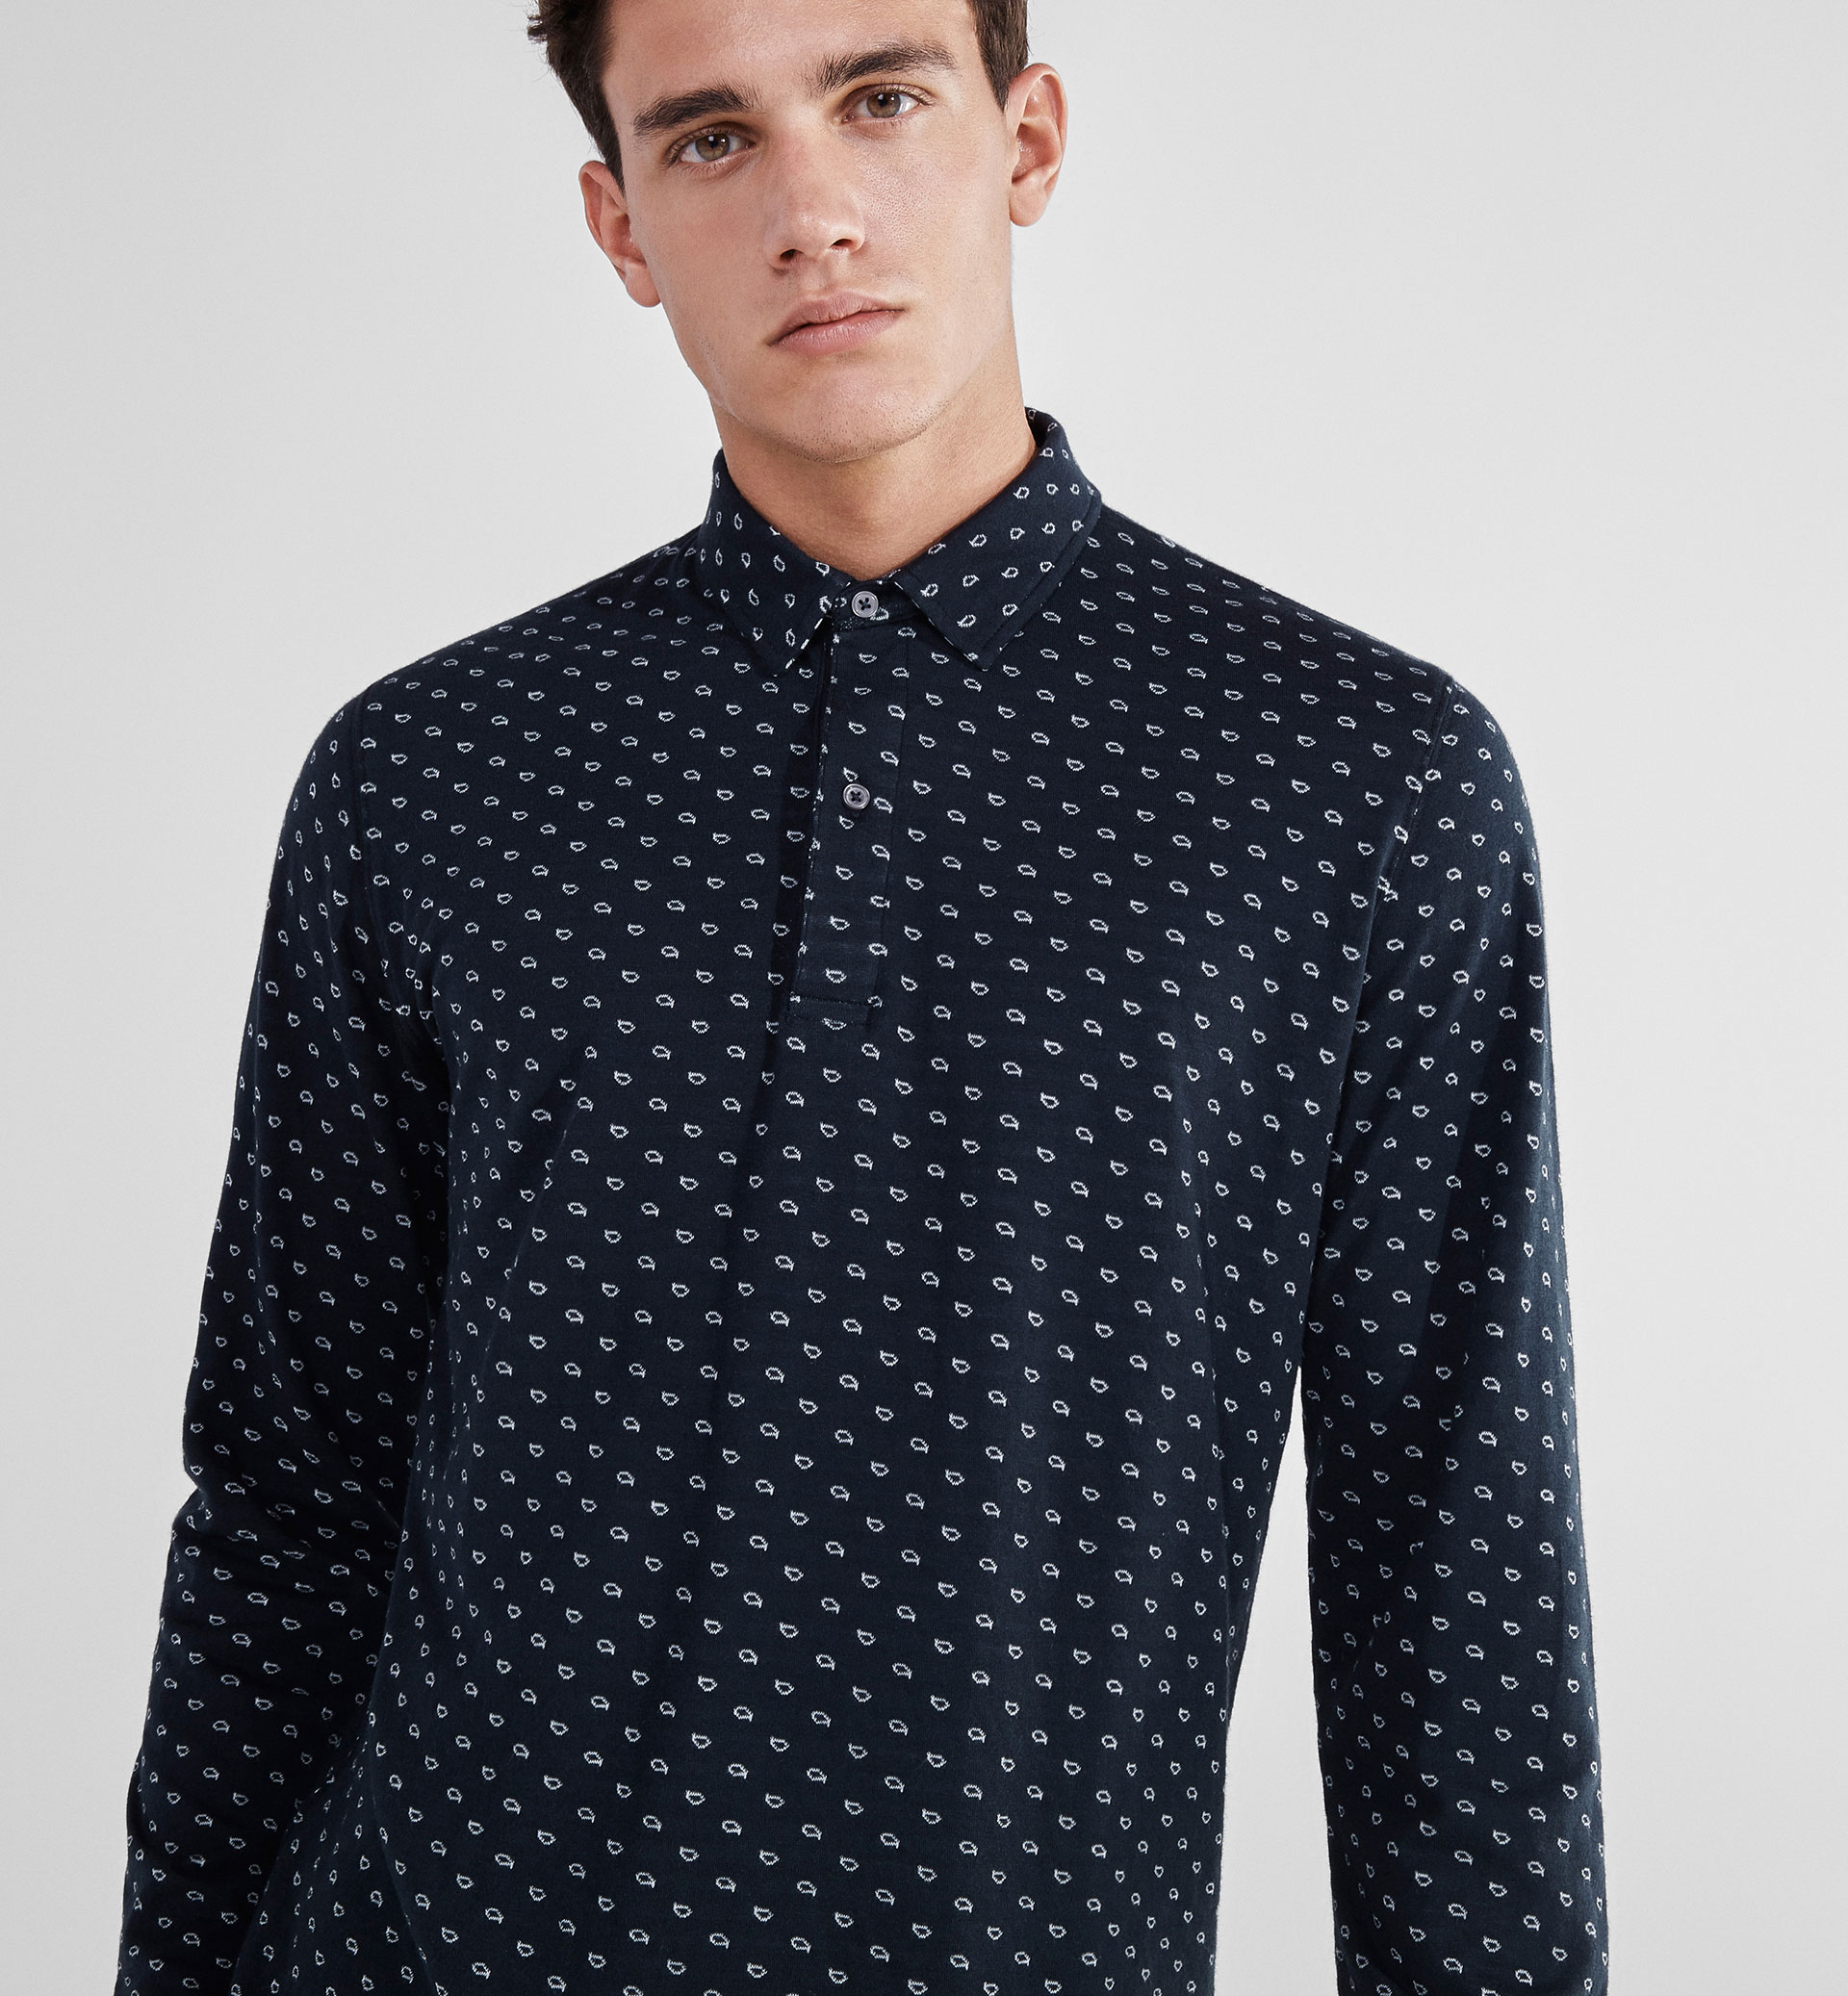 SOFT POLO SHIRT WITH A DOUBLE-FABRIC DETAIL